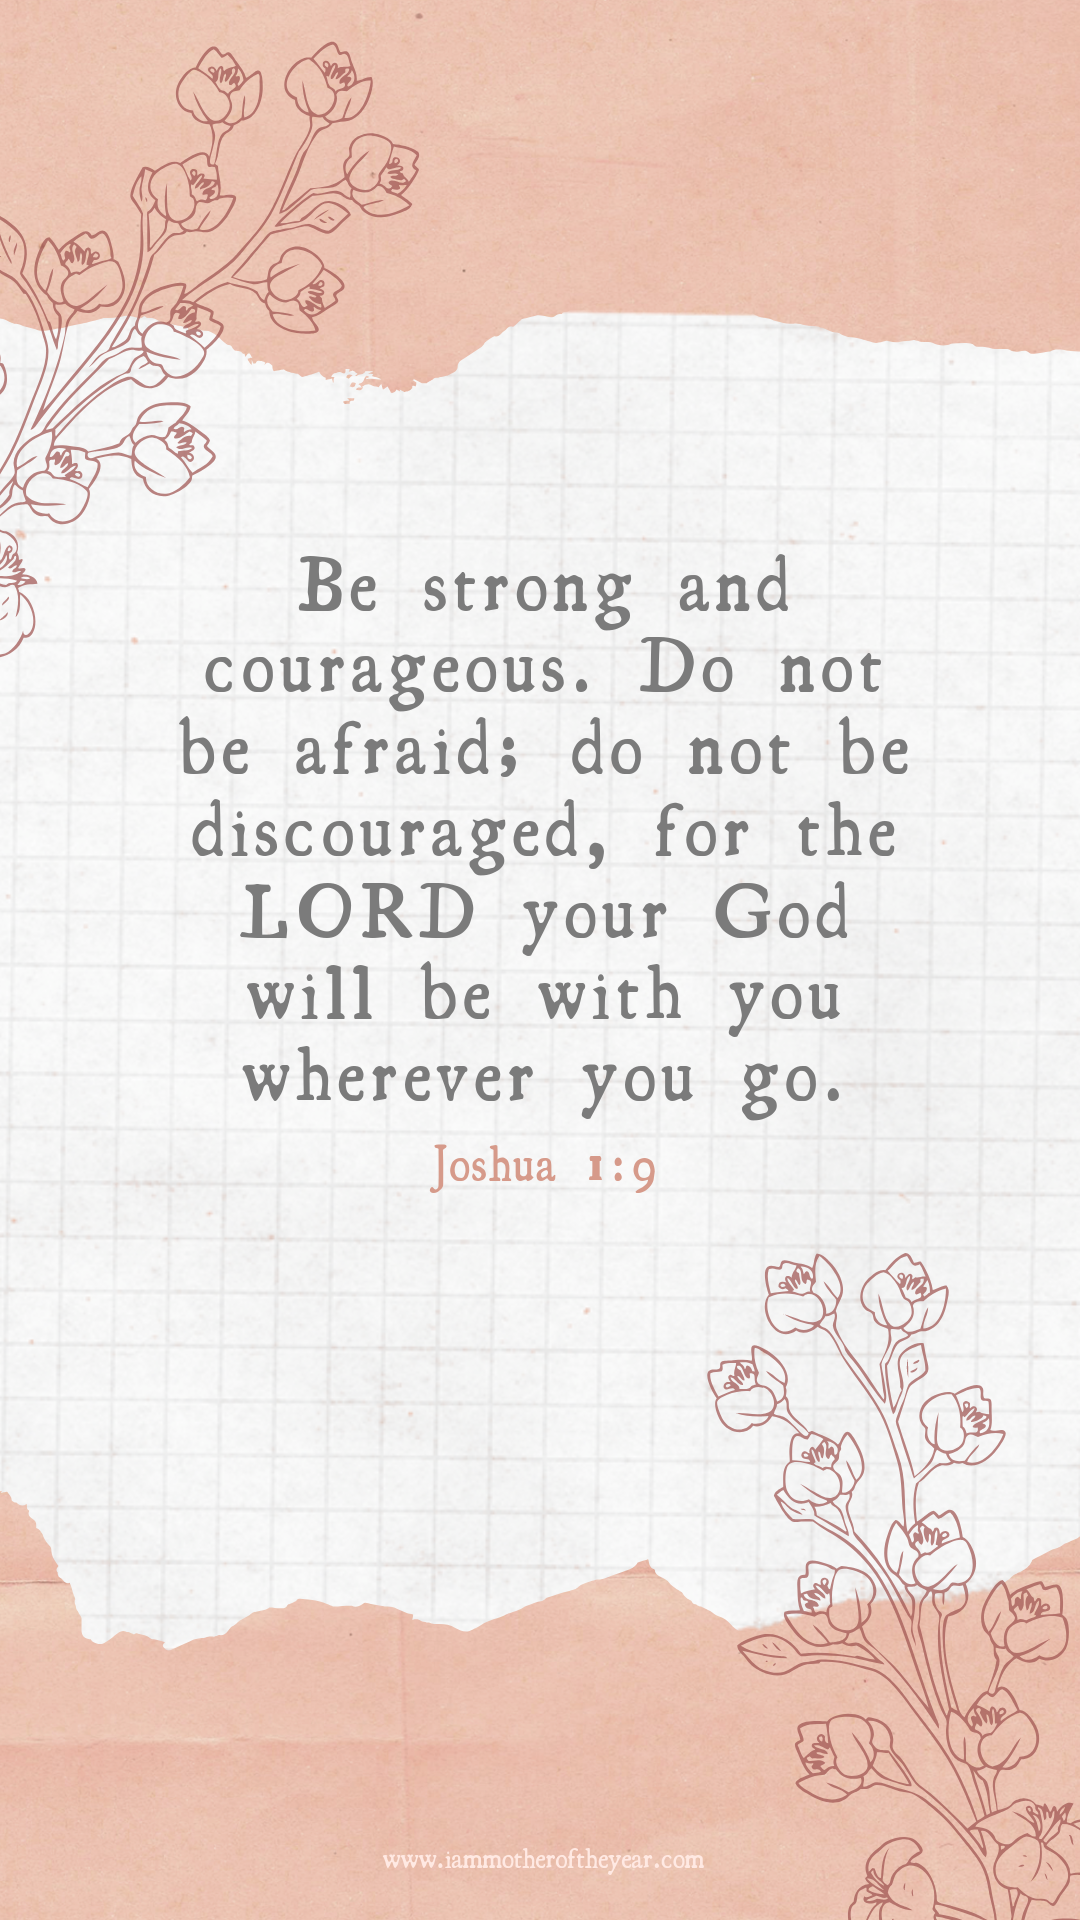 Be strong and courageous. Do not be afraid; do not be discouraged, for the LORD your God will be with you wherever you go..png